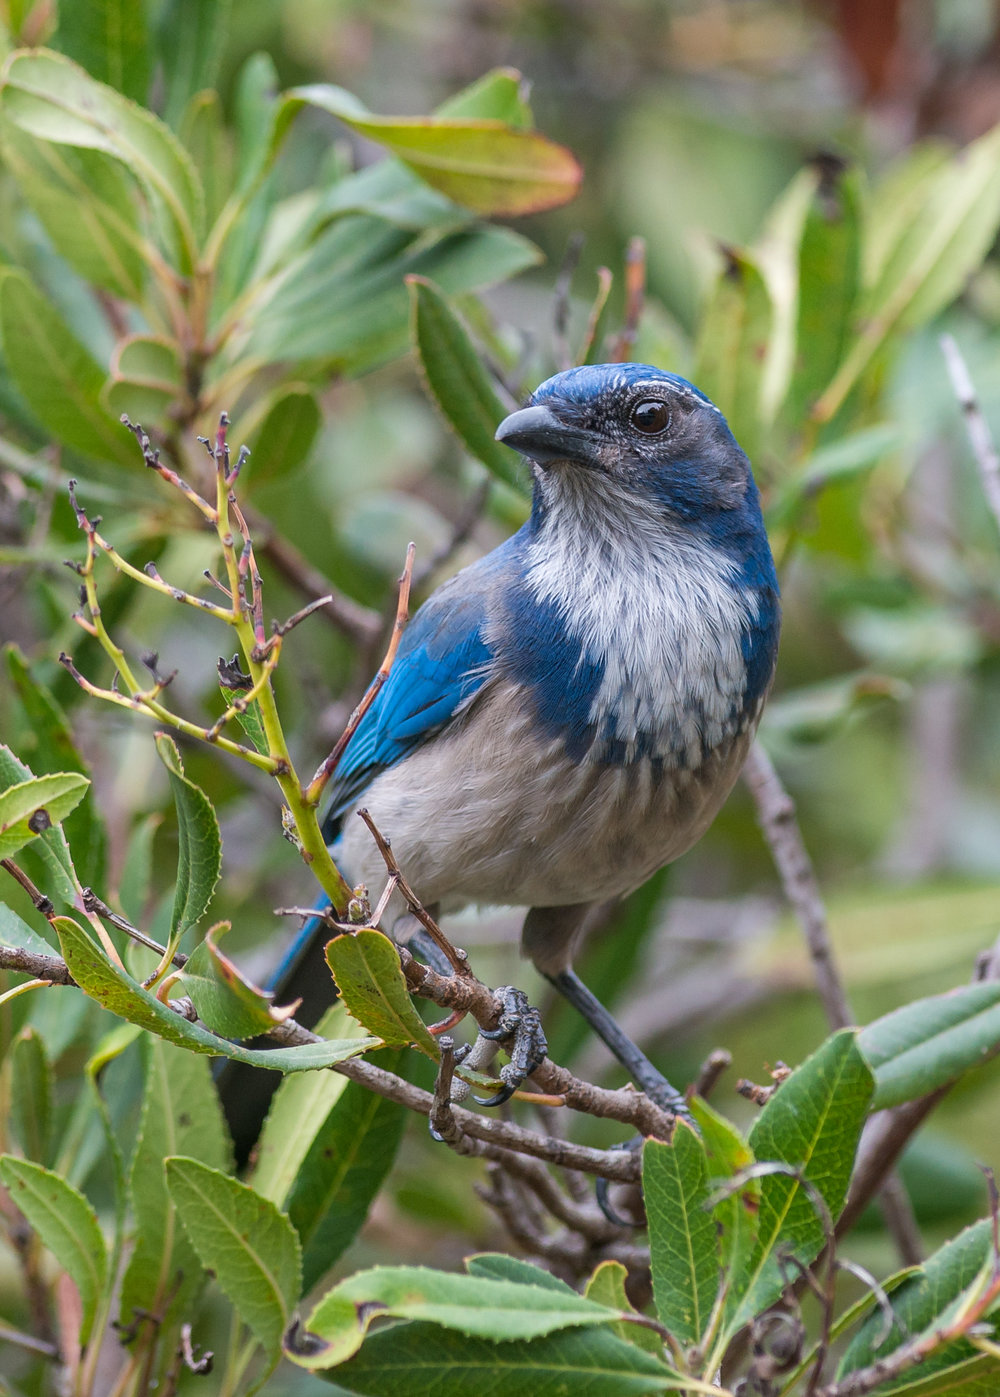 Photo of the Week 44:   California Scrub Jay (Aphelocoma californica) - Boulder Creek, SCZ (CA) EQ: D800, 300mm f/2.8   Taken: 10-17-2015 at 11:25 Settings: 300 mm (35mm eqiv), 1/800s, f/4.0, ISO320, +1/3EV         Conditions: Overcast